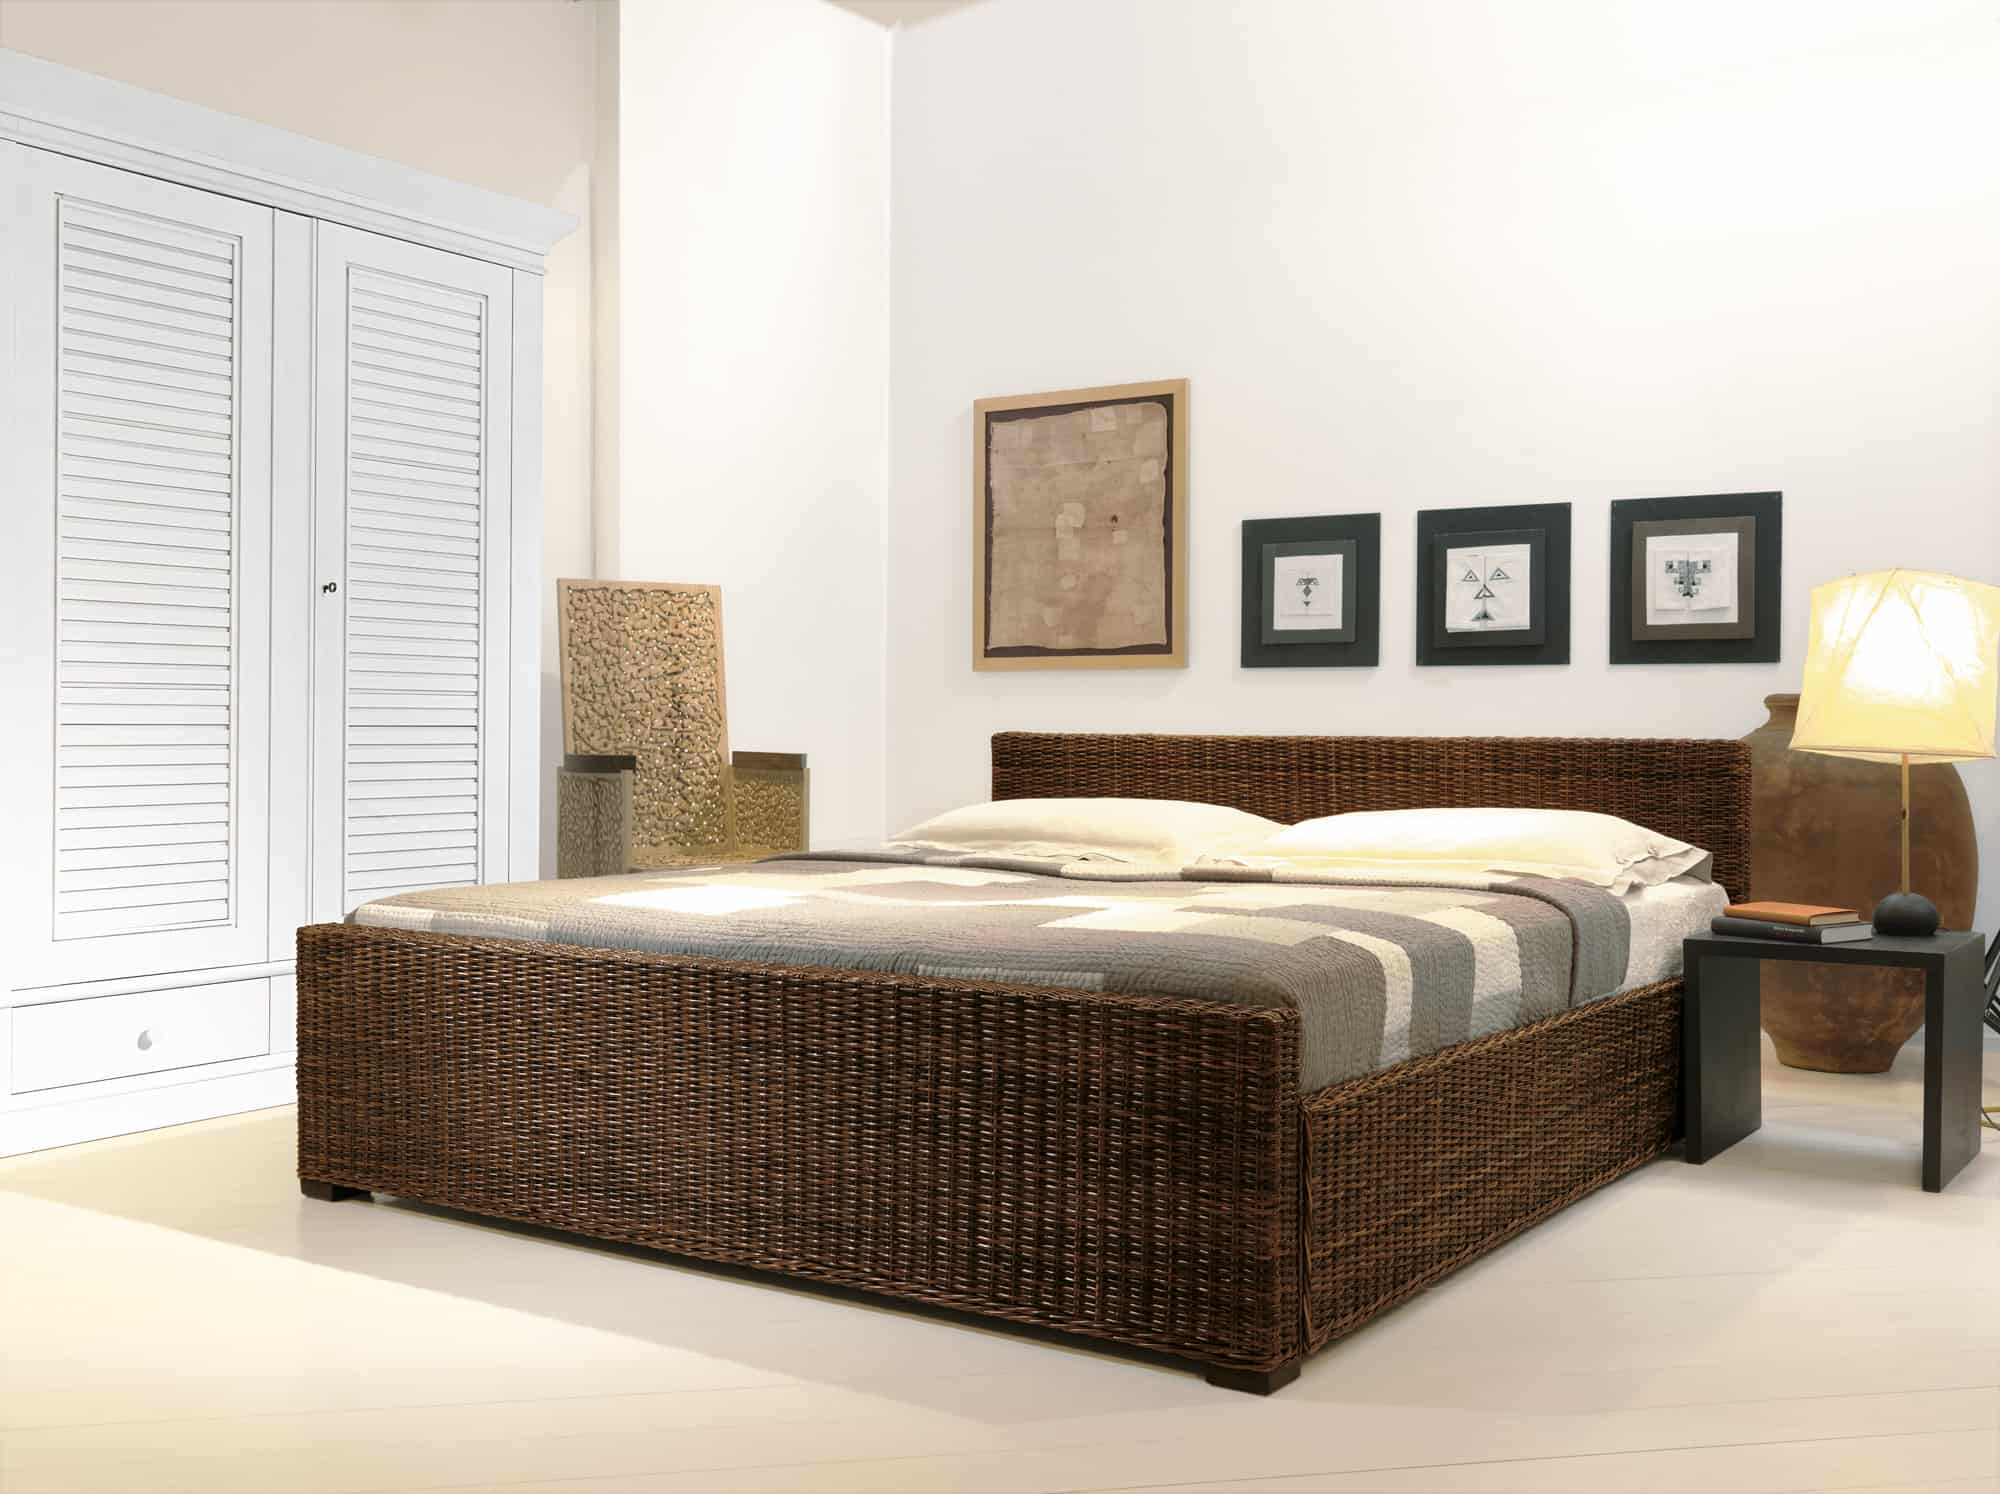 bett monk m221 marktex. Black Bedroom Furniture Sets. Home Design Ideas